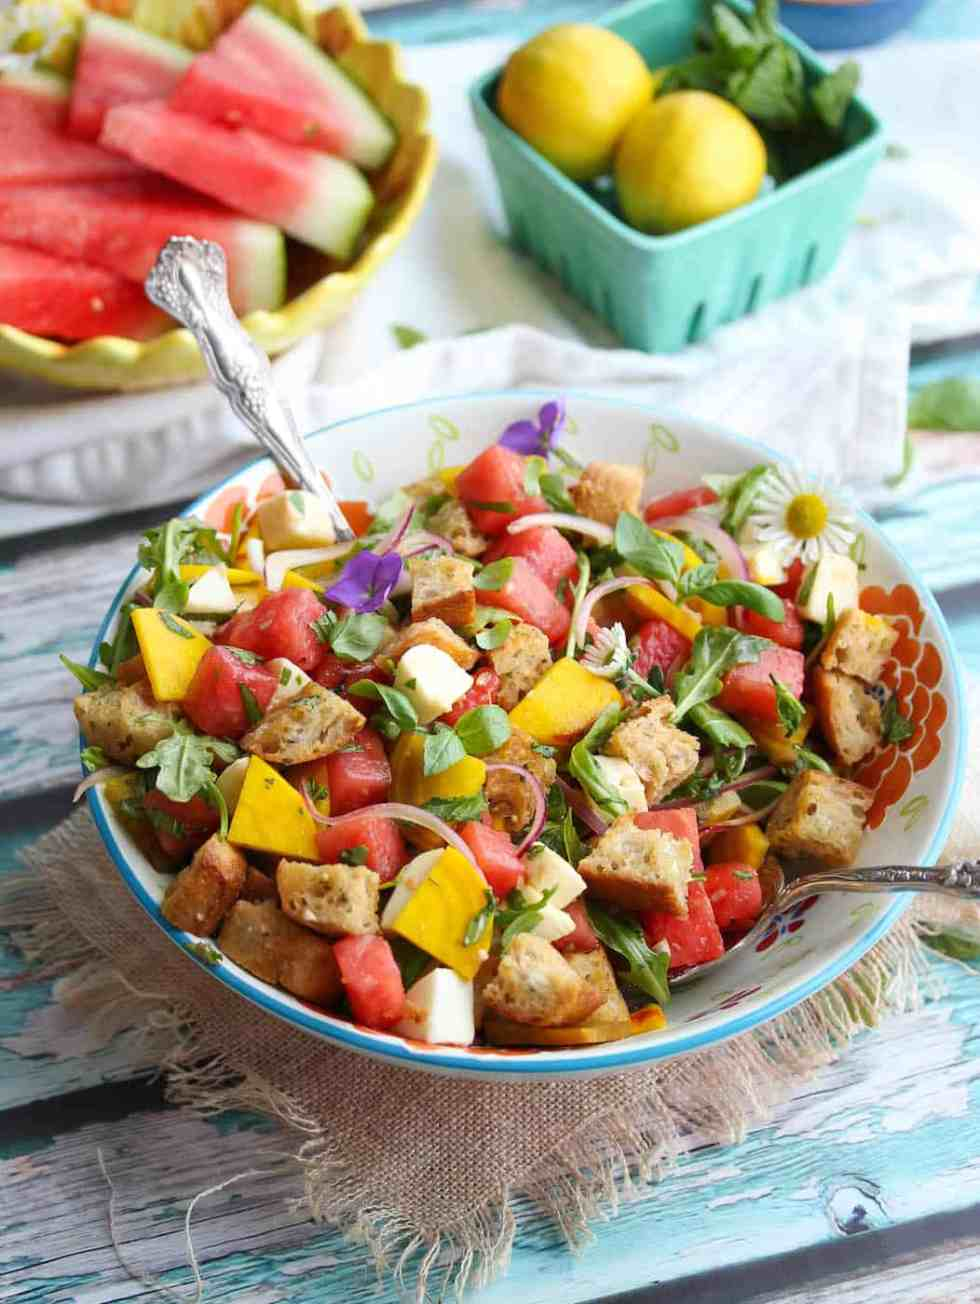 Watermelon panzanella salad in blue bowl with watermelon and carton of lemons in background.